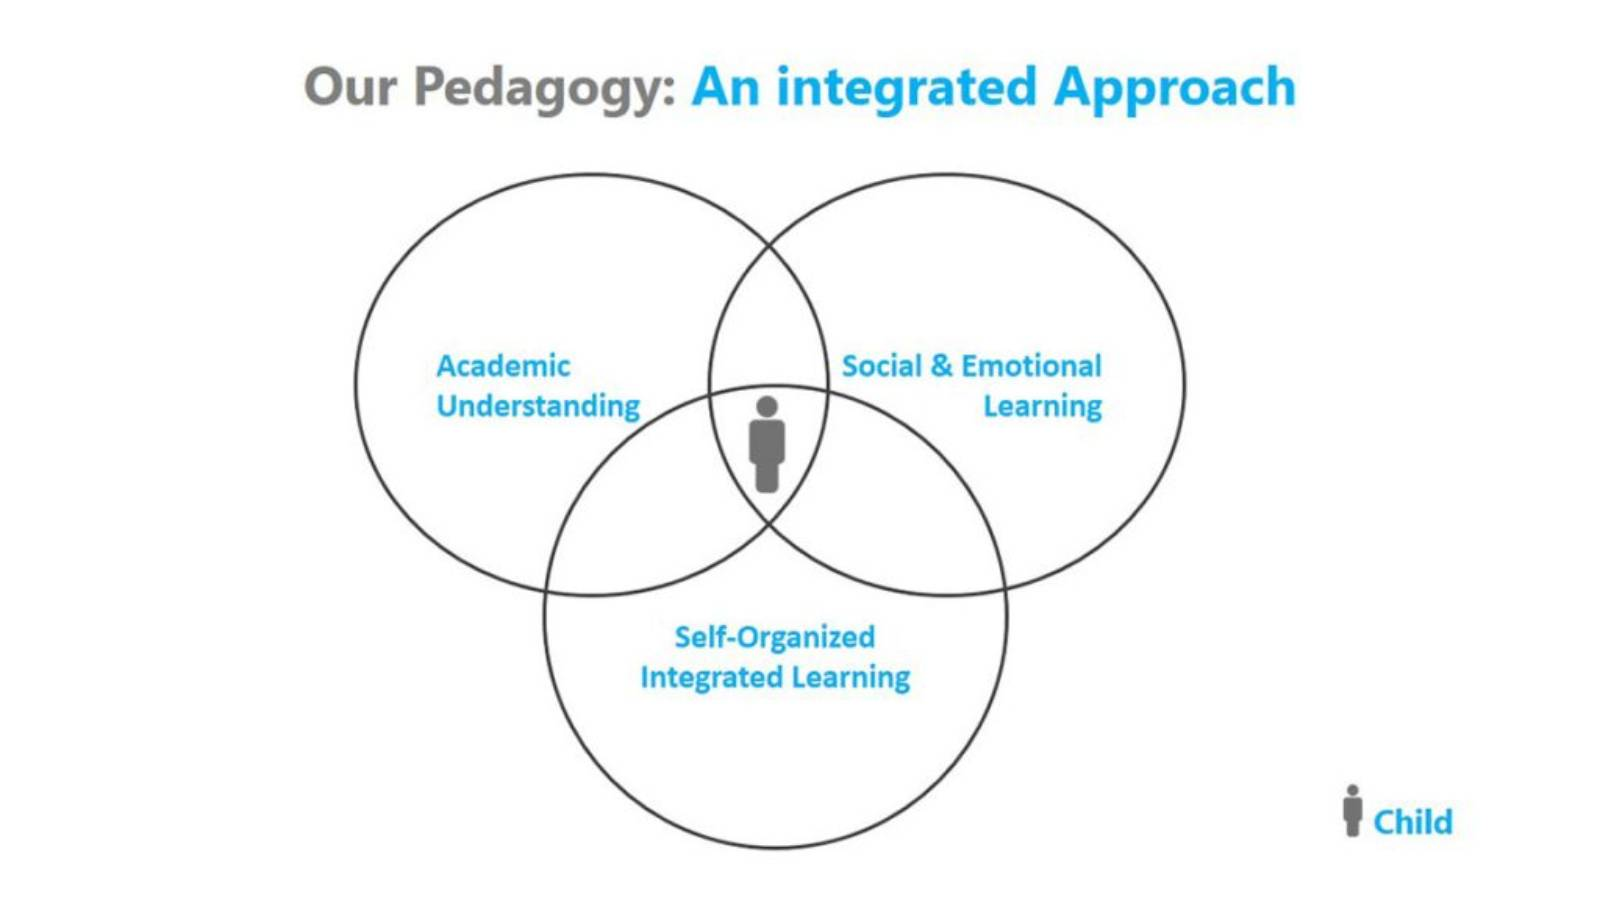 Our Pedagogy Approach